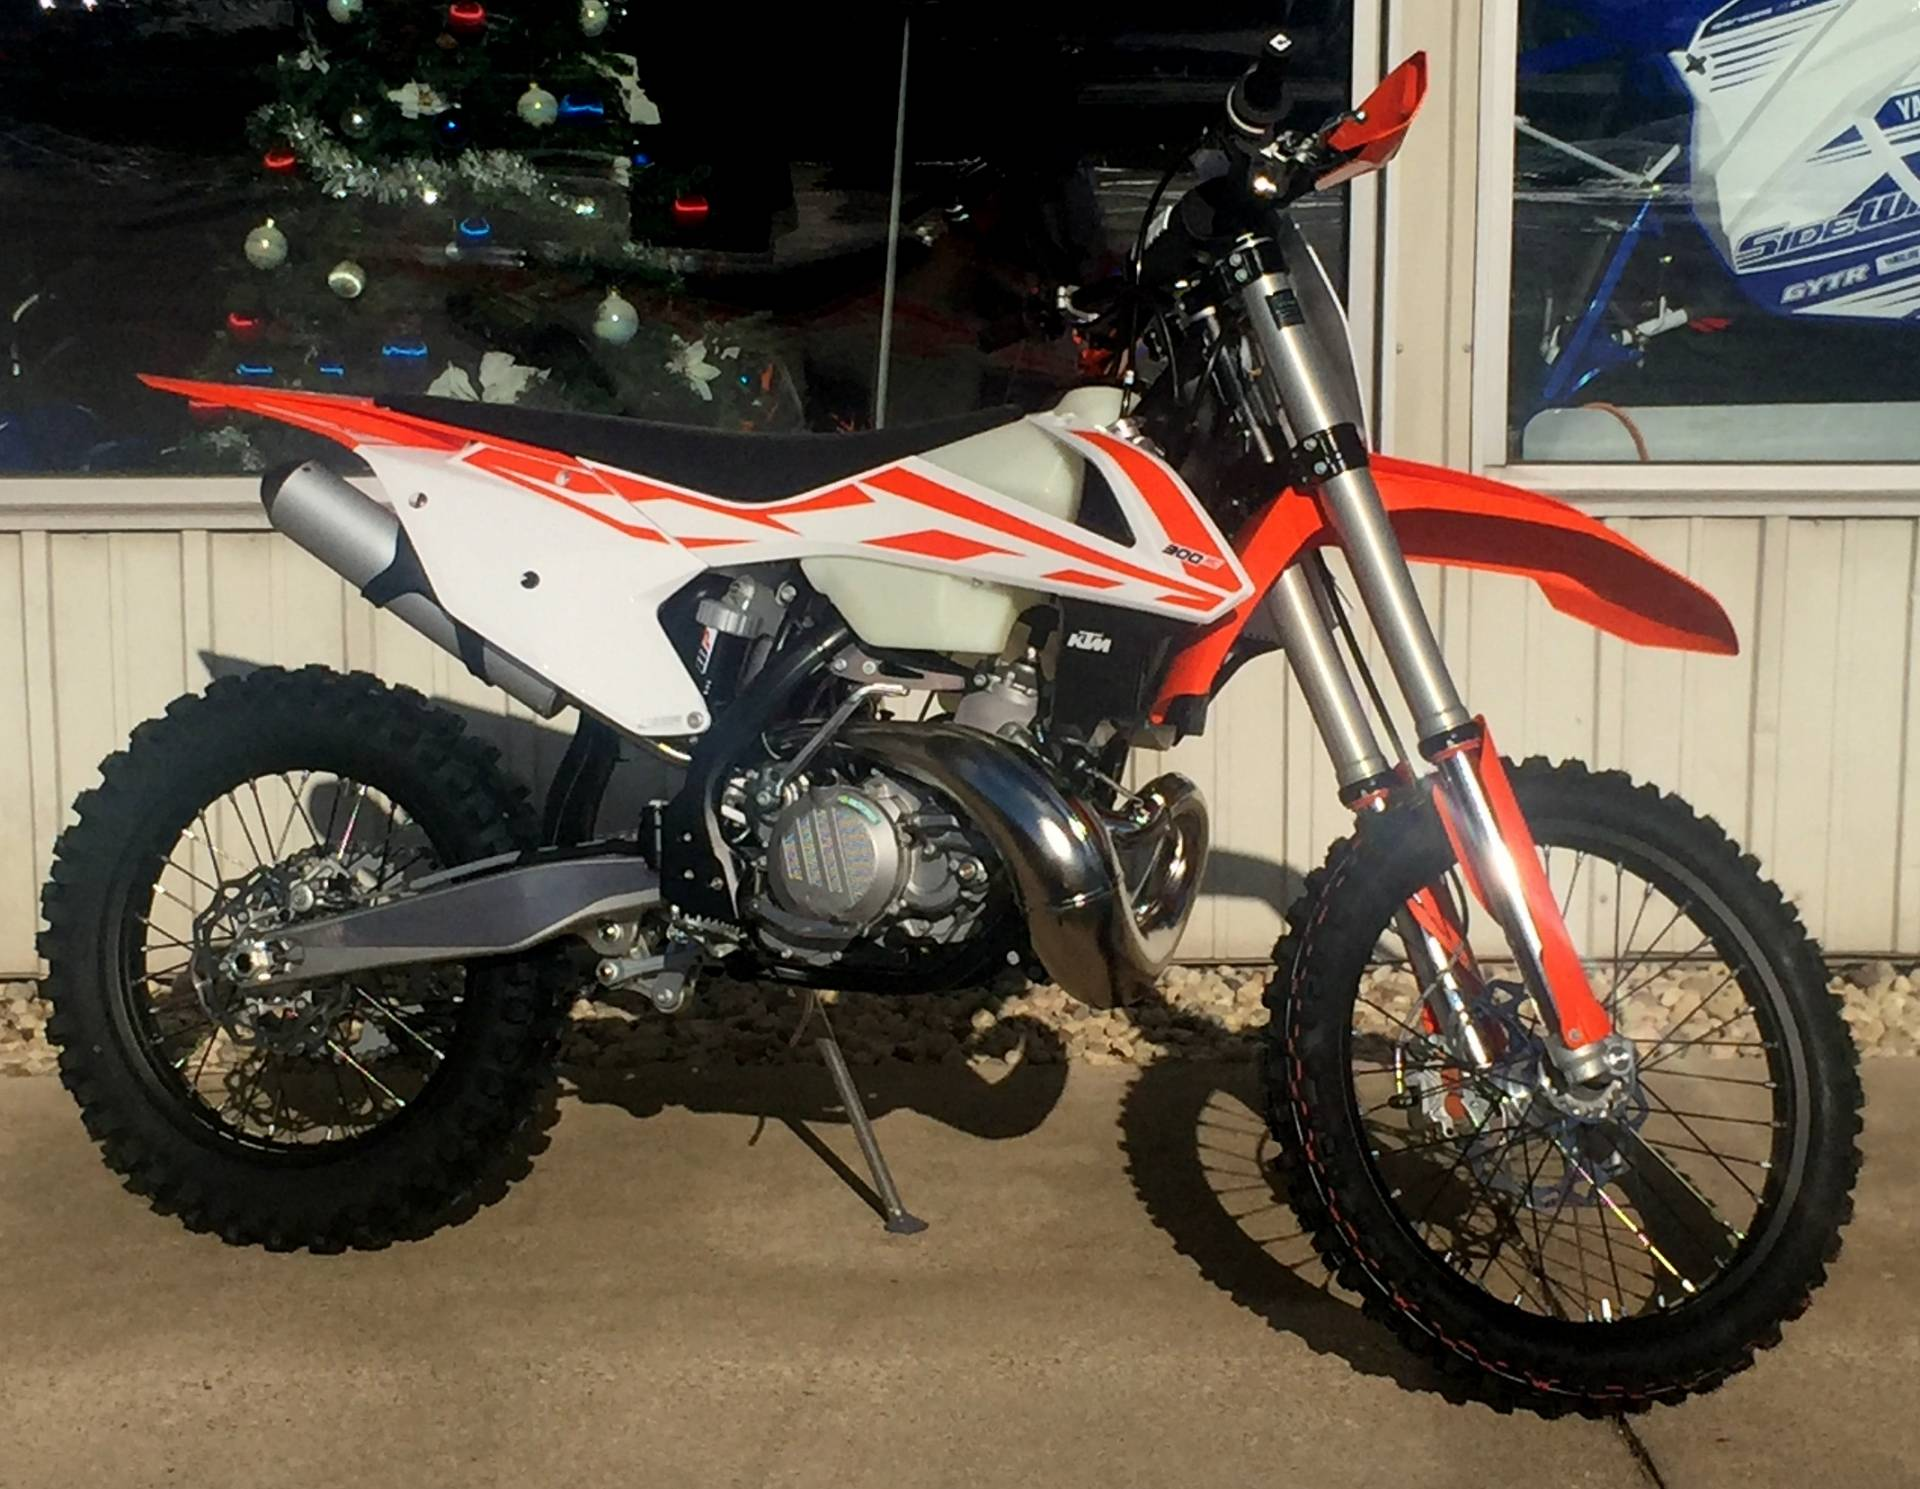 new 2017 ktm 300 xc-w motorcycles in hobart, in | stock number: n/a